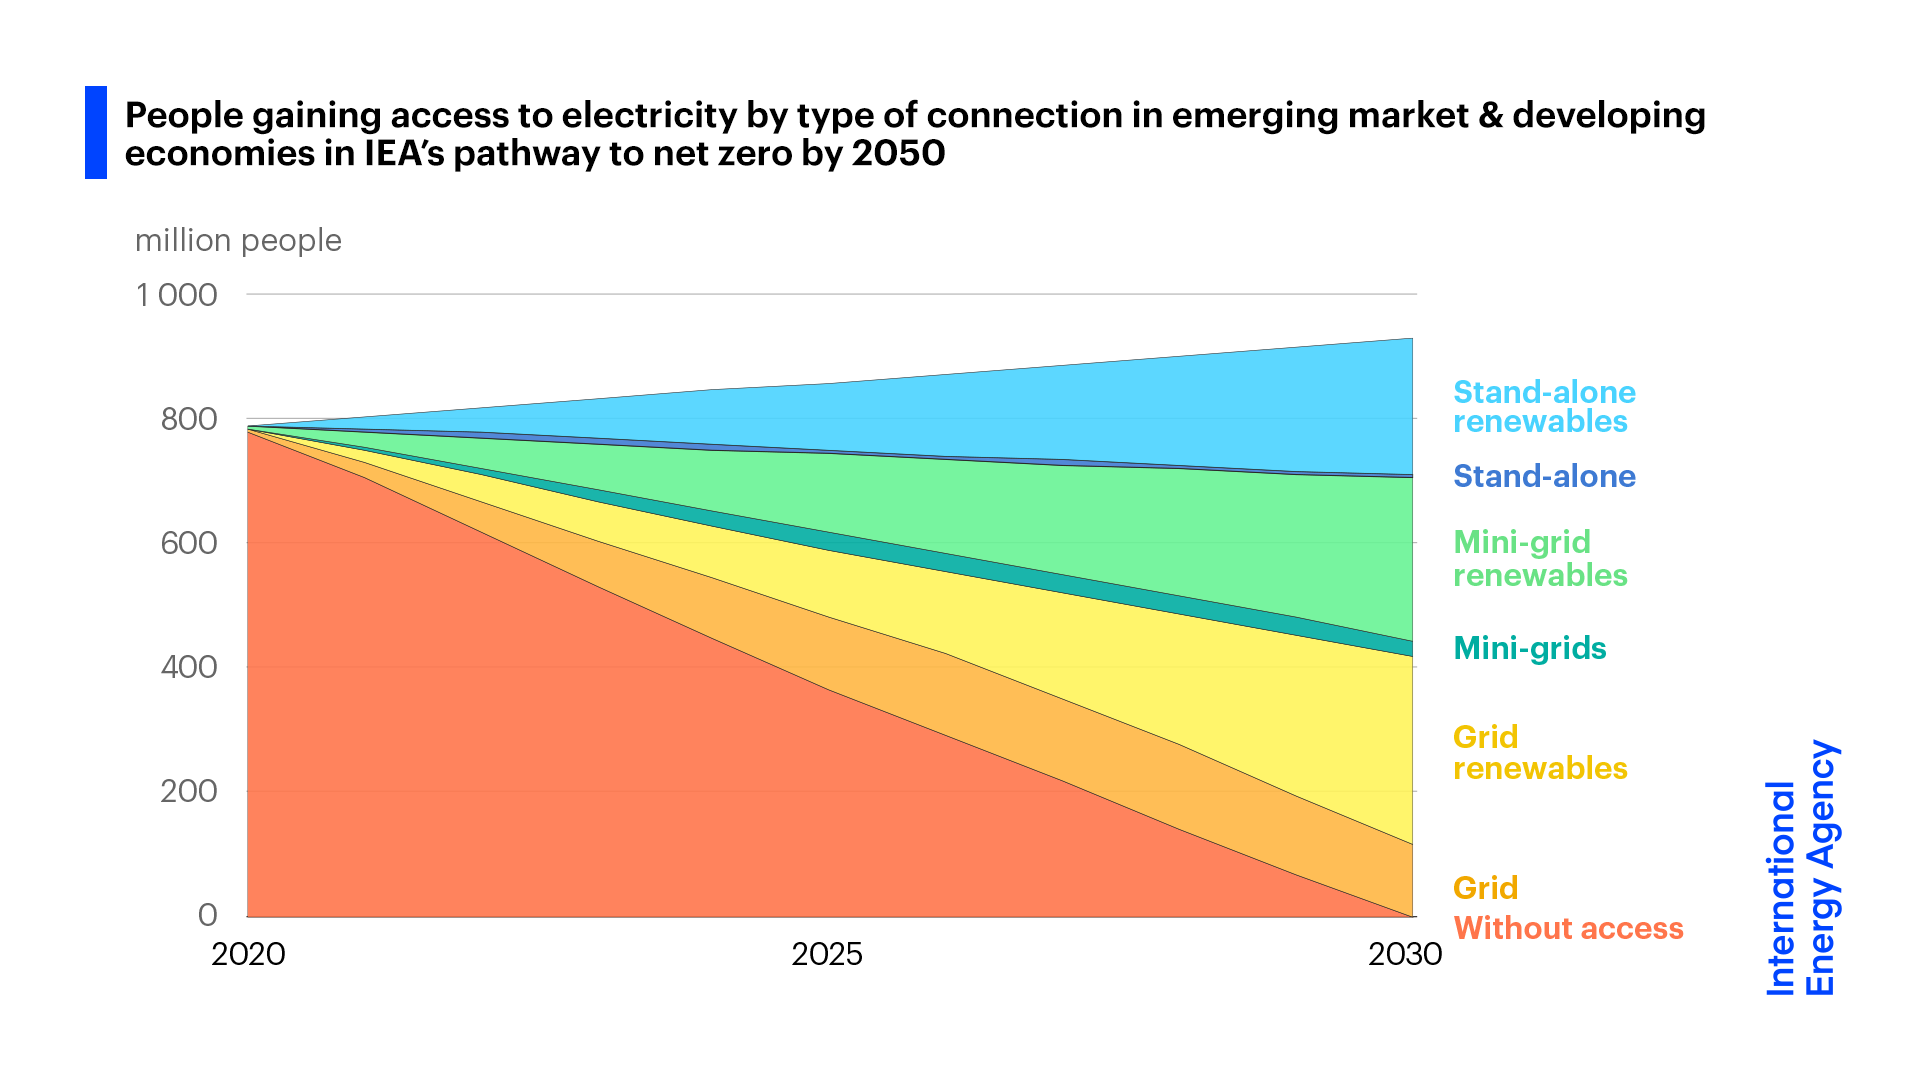 Access to electricity is increasing